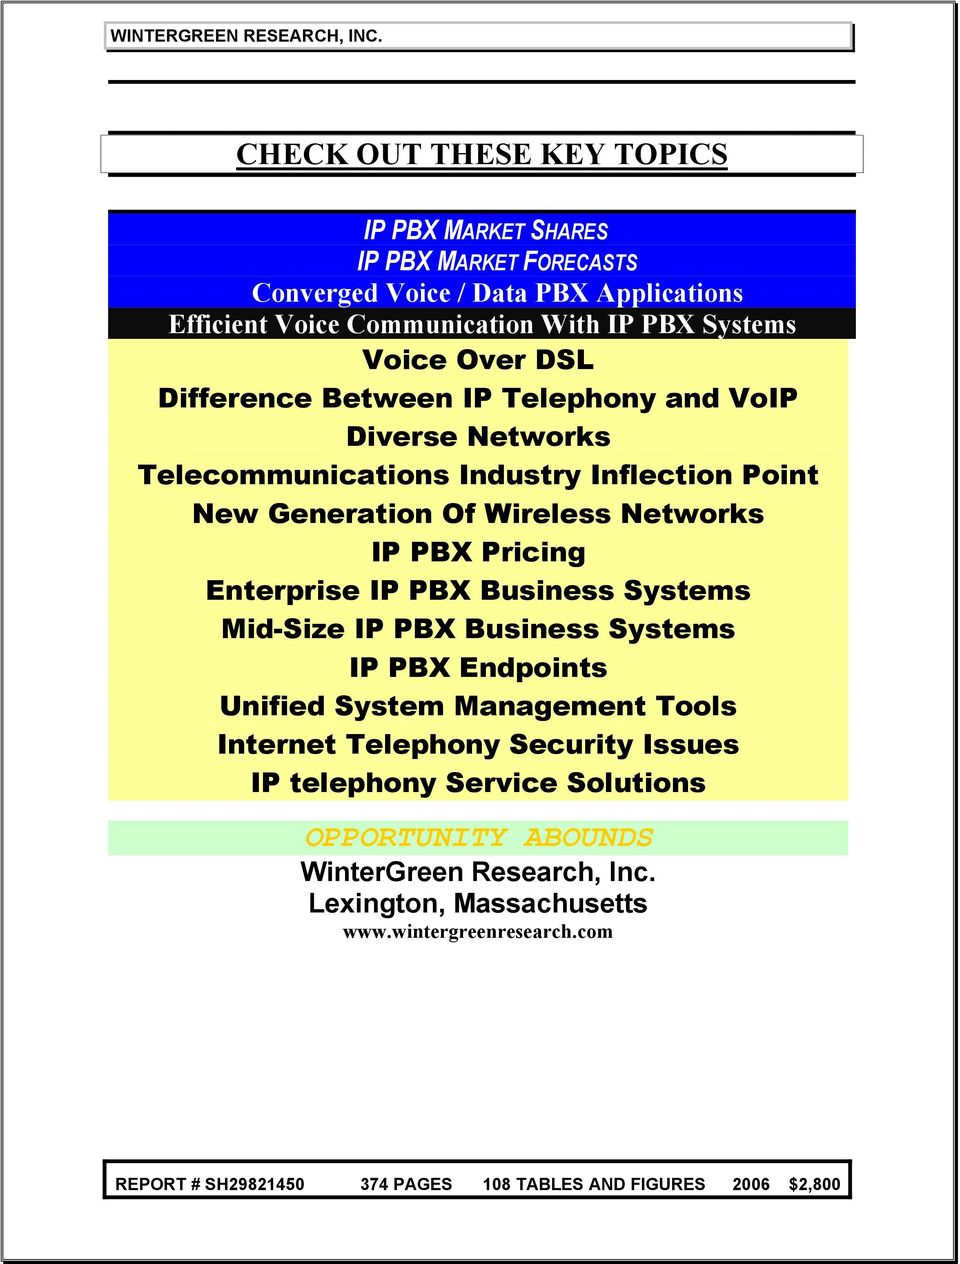 Networks IP PBX Pricing Enterprise IP PBX Business Systems Mid-Size IP PBX Business Systems IP PBX Endpoints Unified System Management Tools Internet